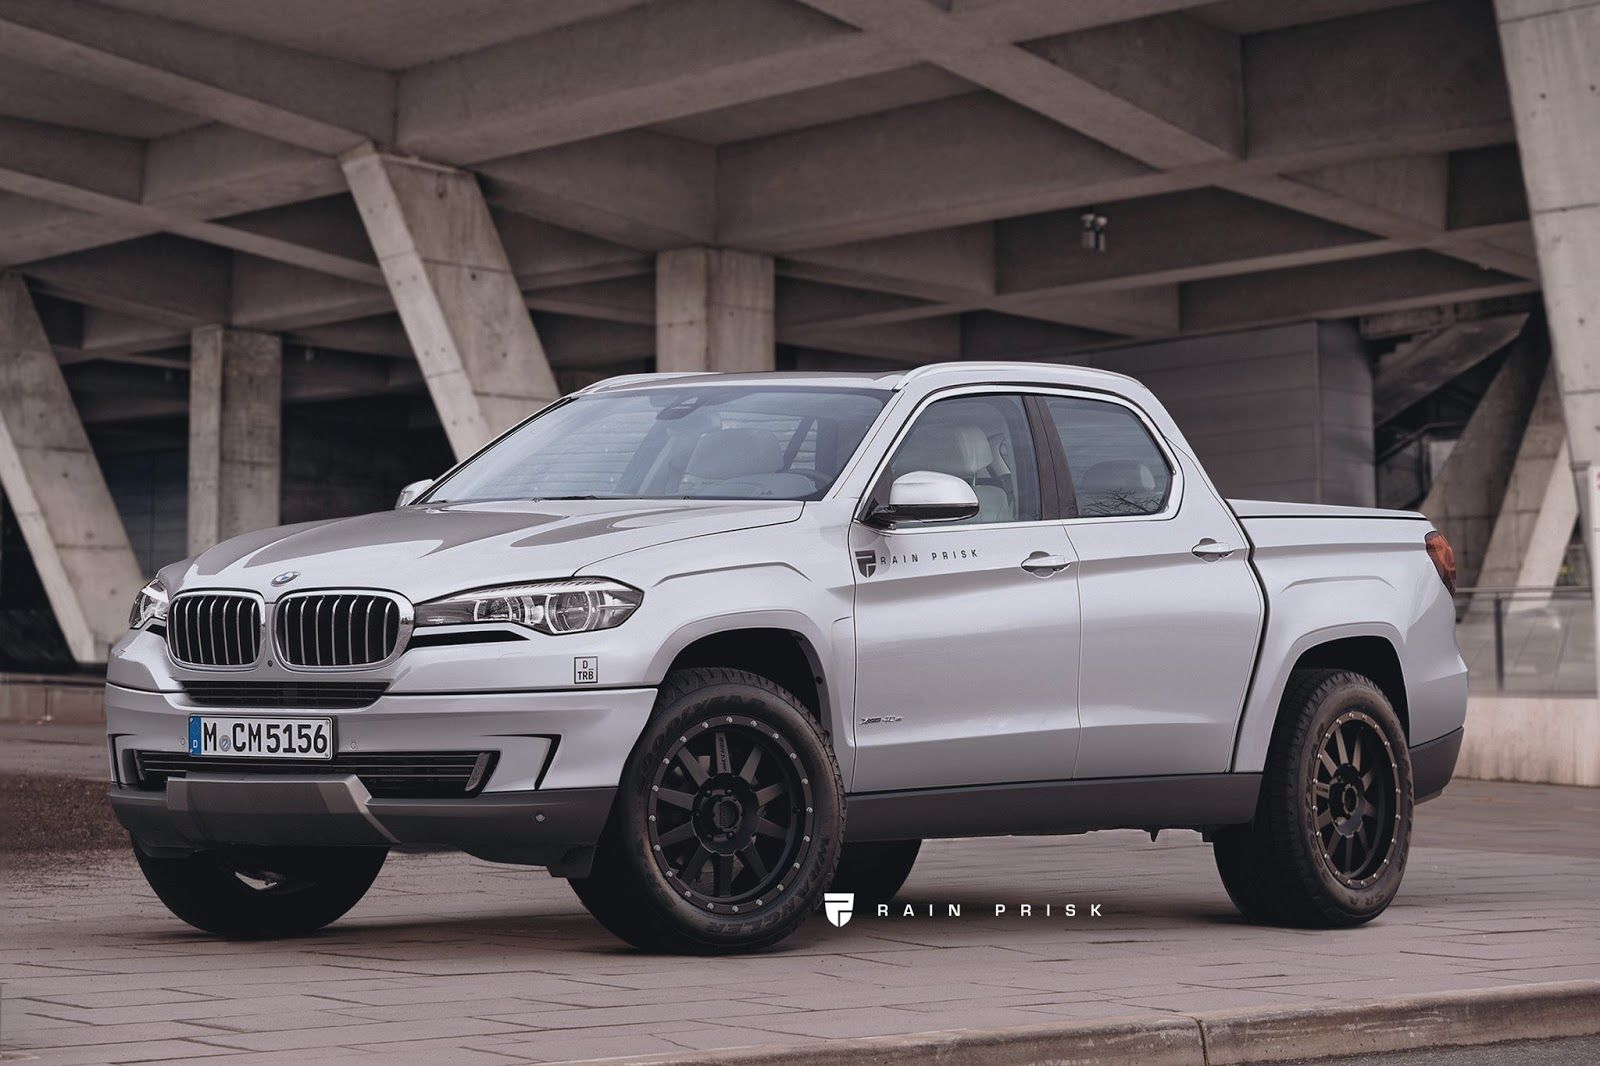 This Bmw Pickup Truck Rival To The Mercedes Benz X Class Could Be A Home Run Bmw Australia Bmw Truck Pickup Trucks